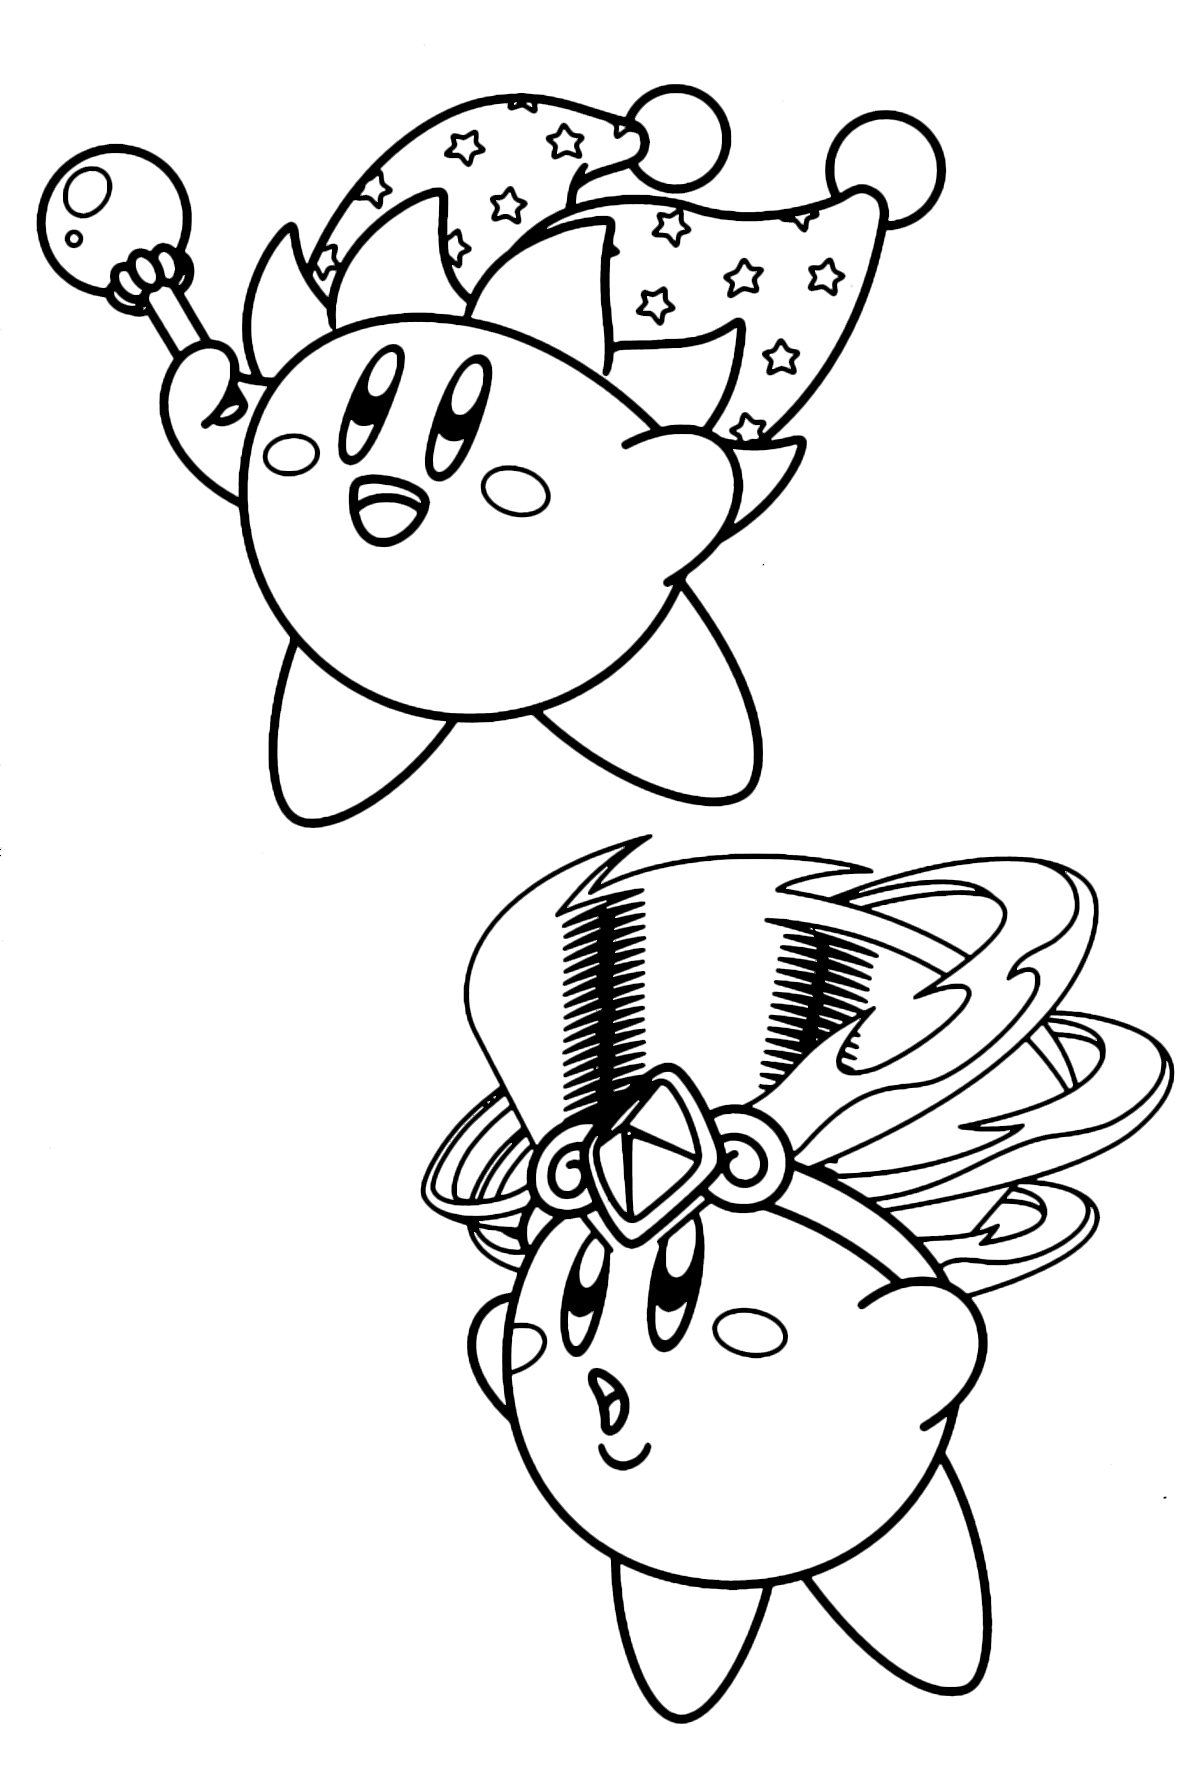 kirby star allies coloring pages kirby with headdress coloring page coloring pages kirby allies coloring star pages kirby